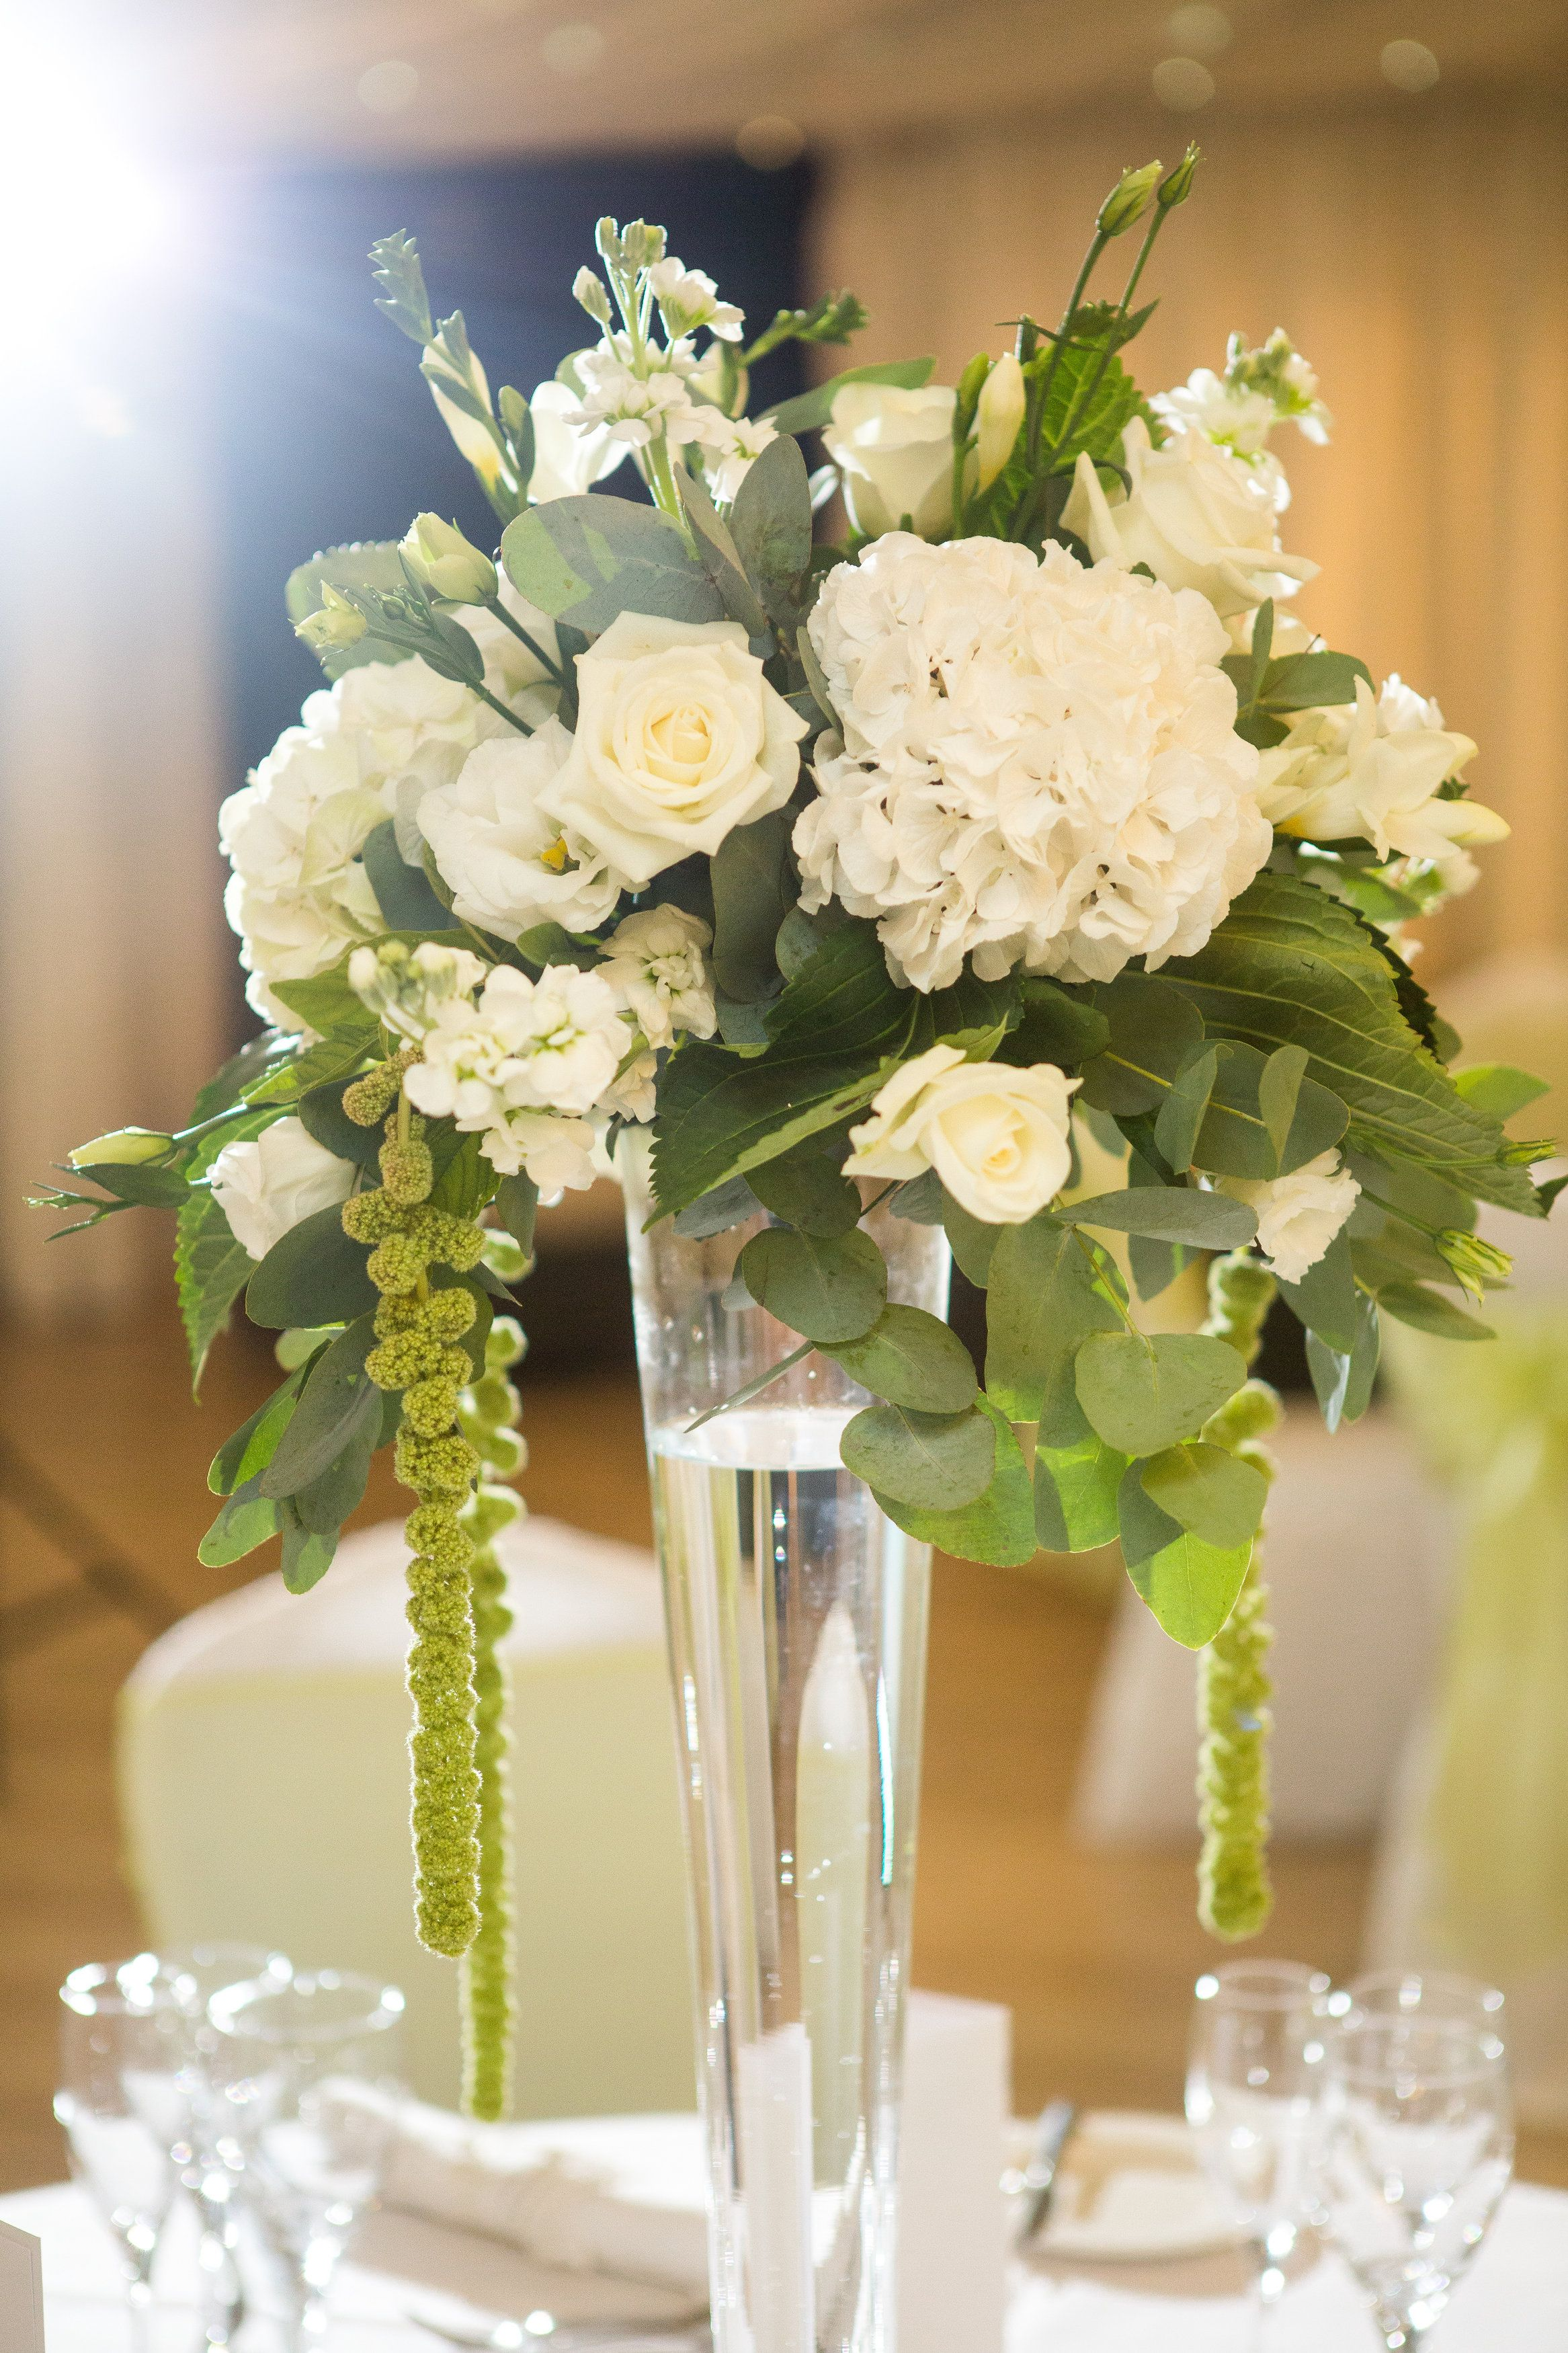 Trailing Floral Simple White Wedding Table Flower Centrepieces